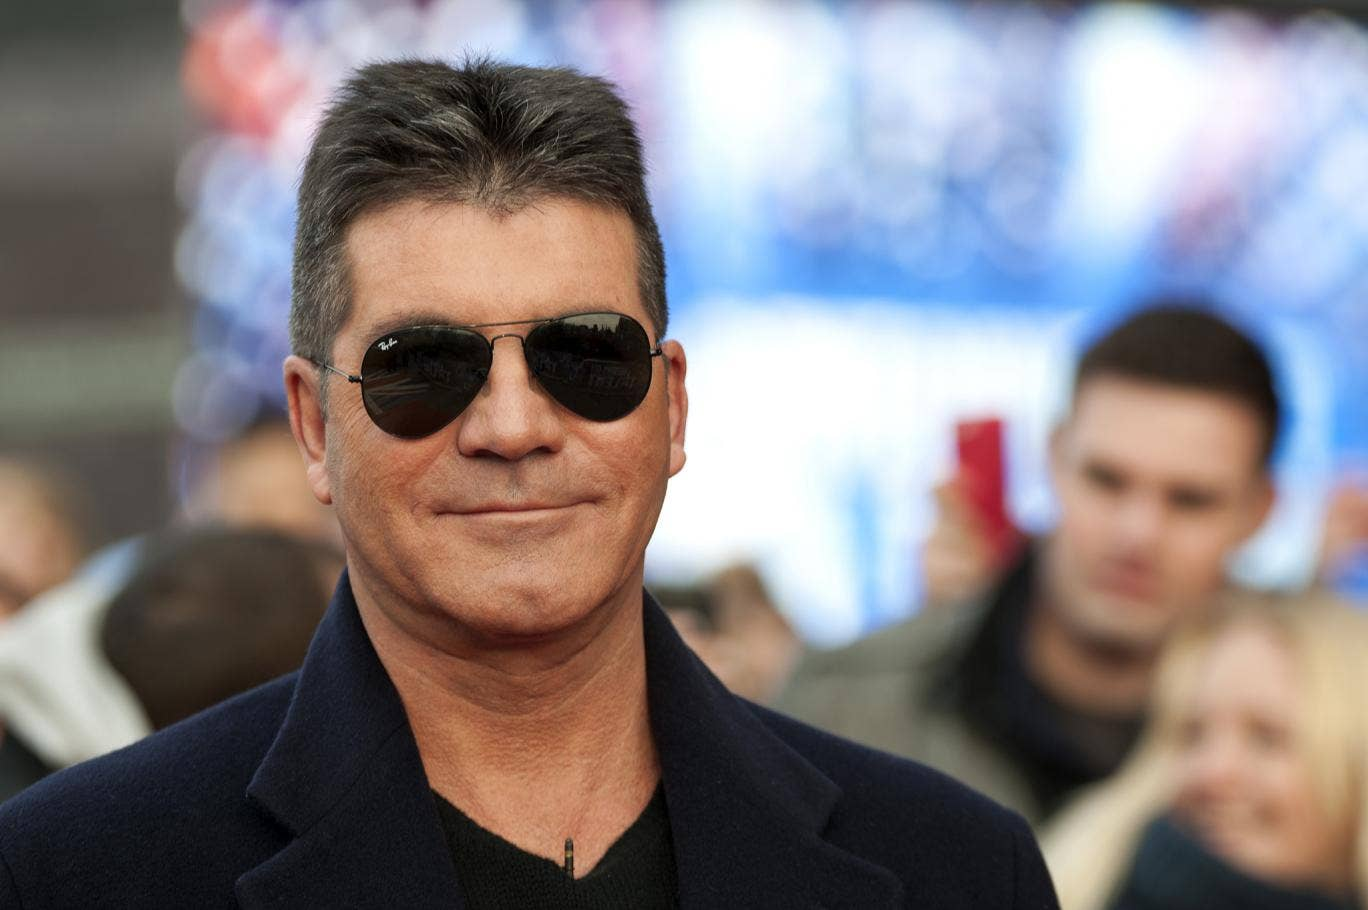 Look who's back: Simon Cowell will sit on the UK's X Factor judging panel this year